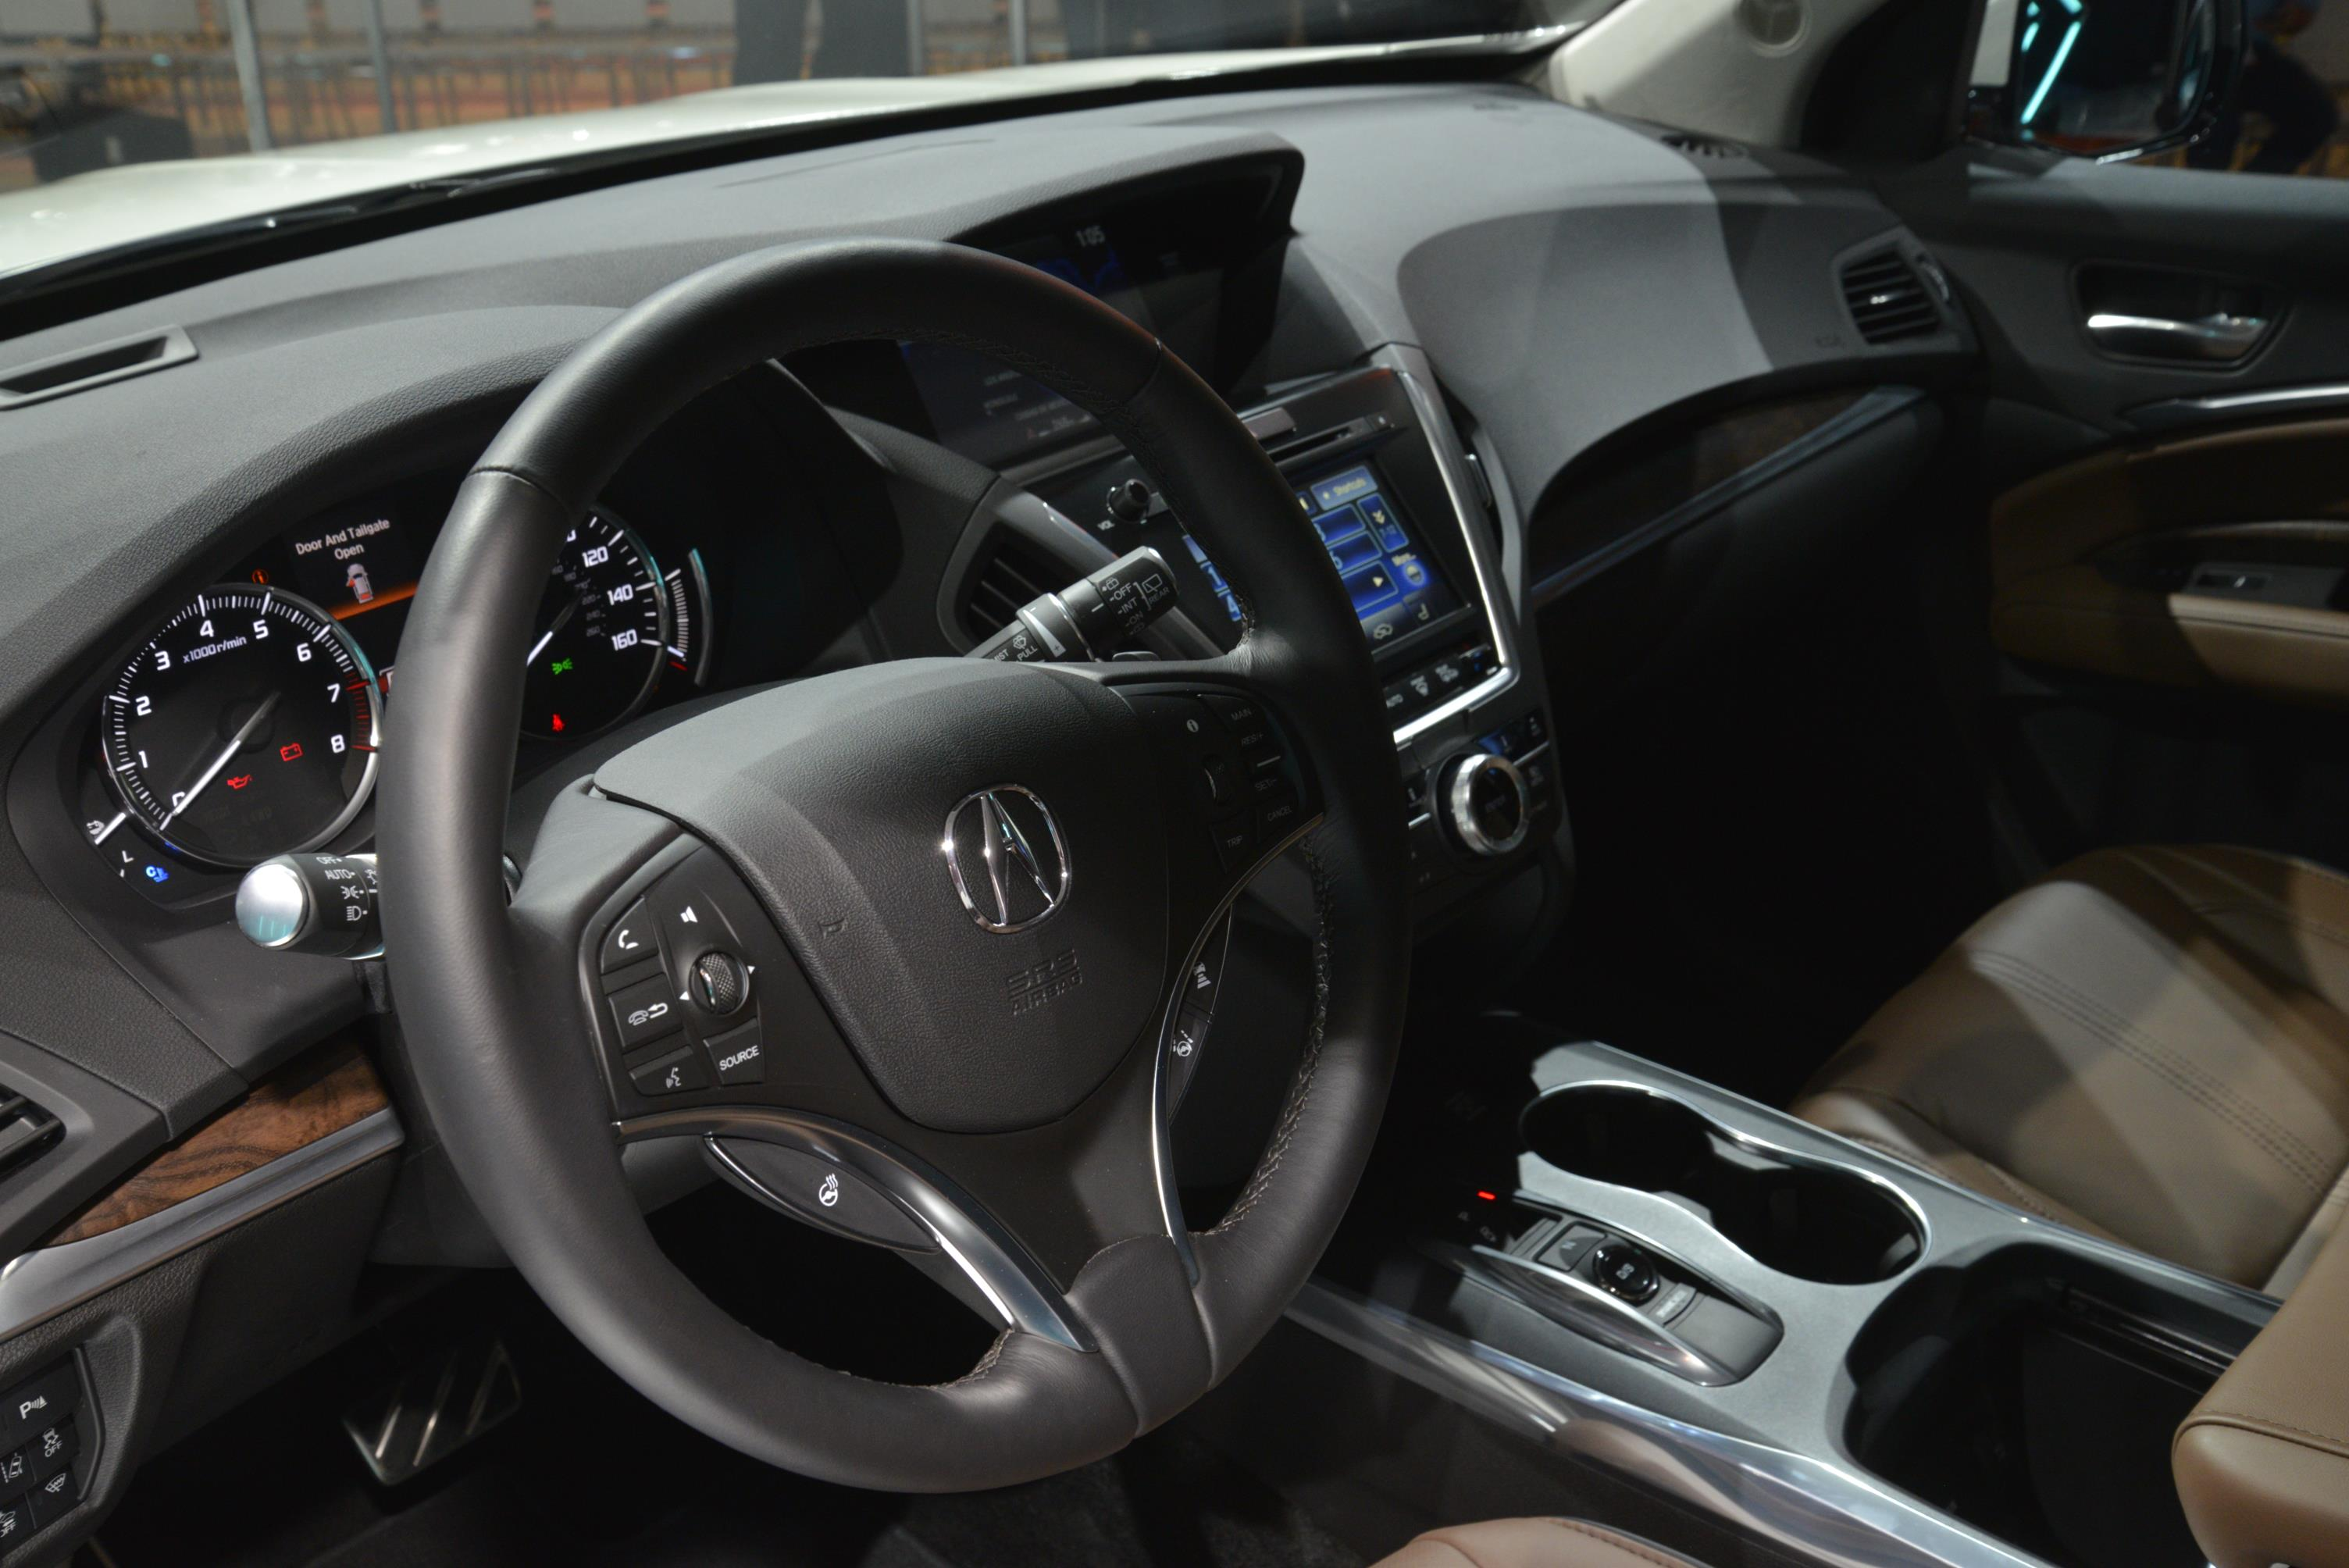 2015 acura mdx hybrid release date 2016 cadillac escalade changes and car interior design. Black Bedroom Furniture Sets. Home Design Ideas